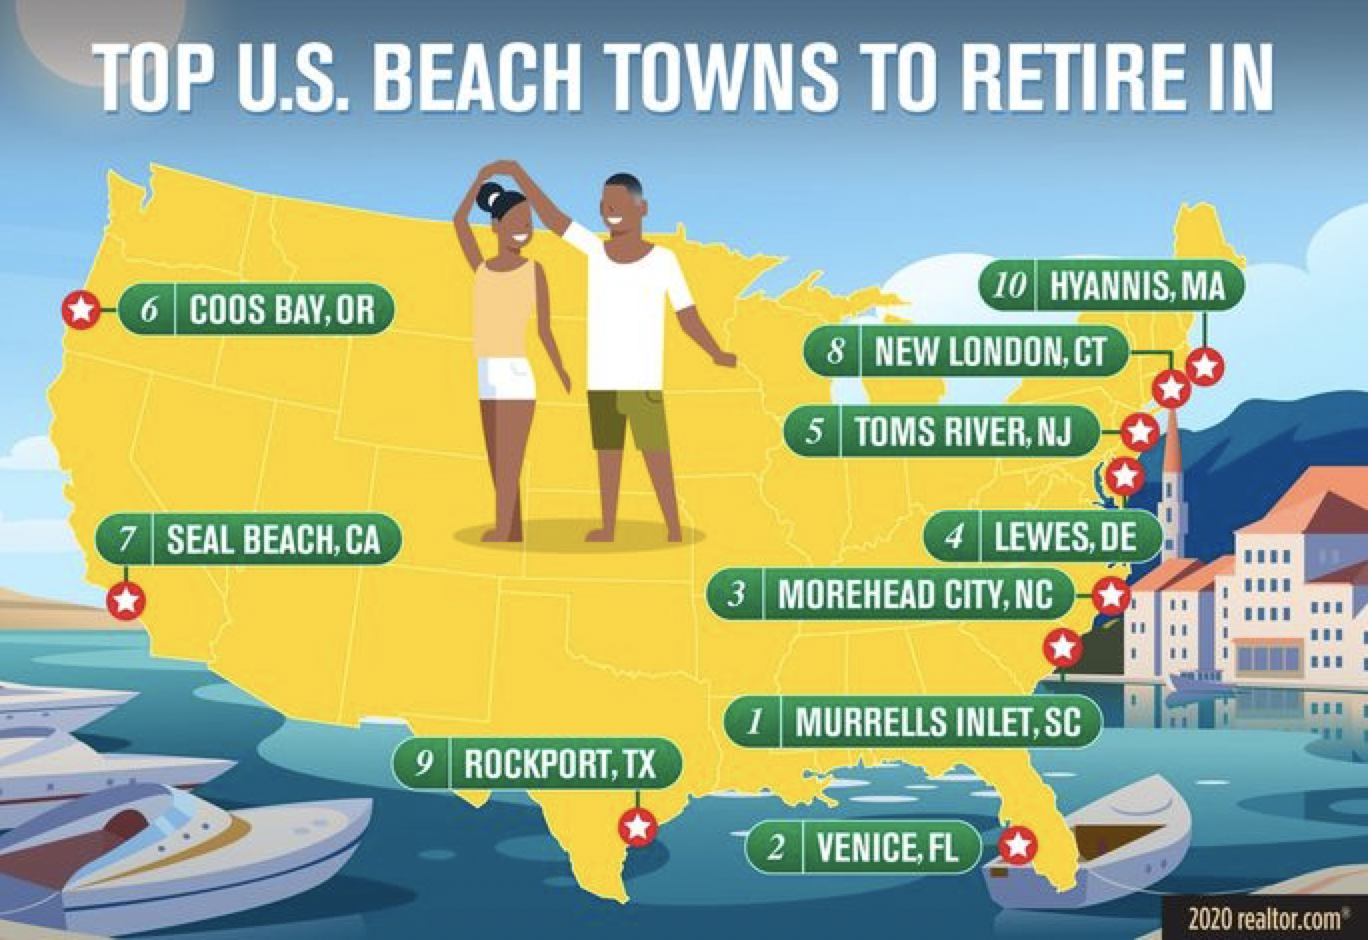 Best Beach Towns for Retirement